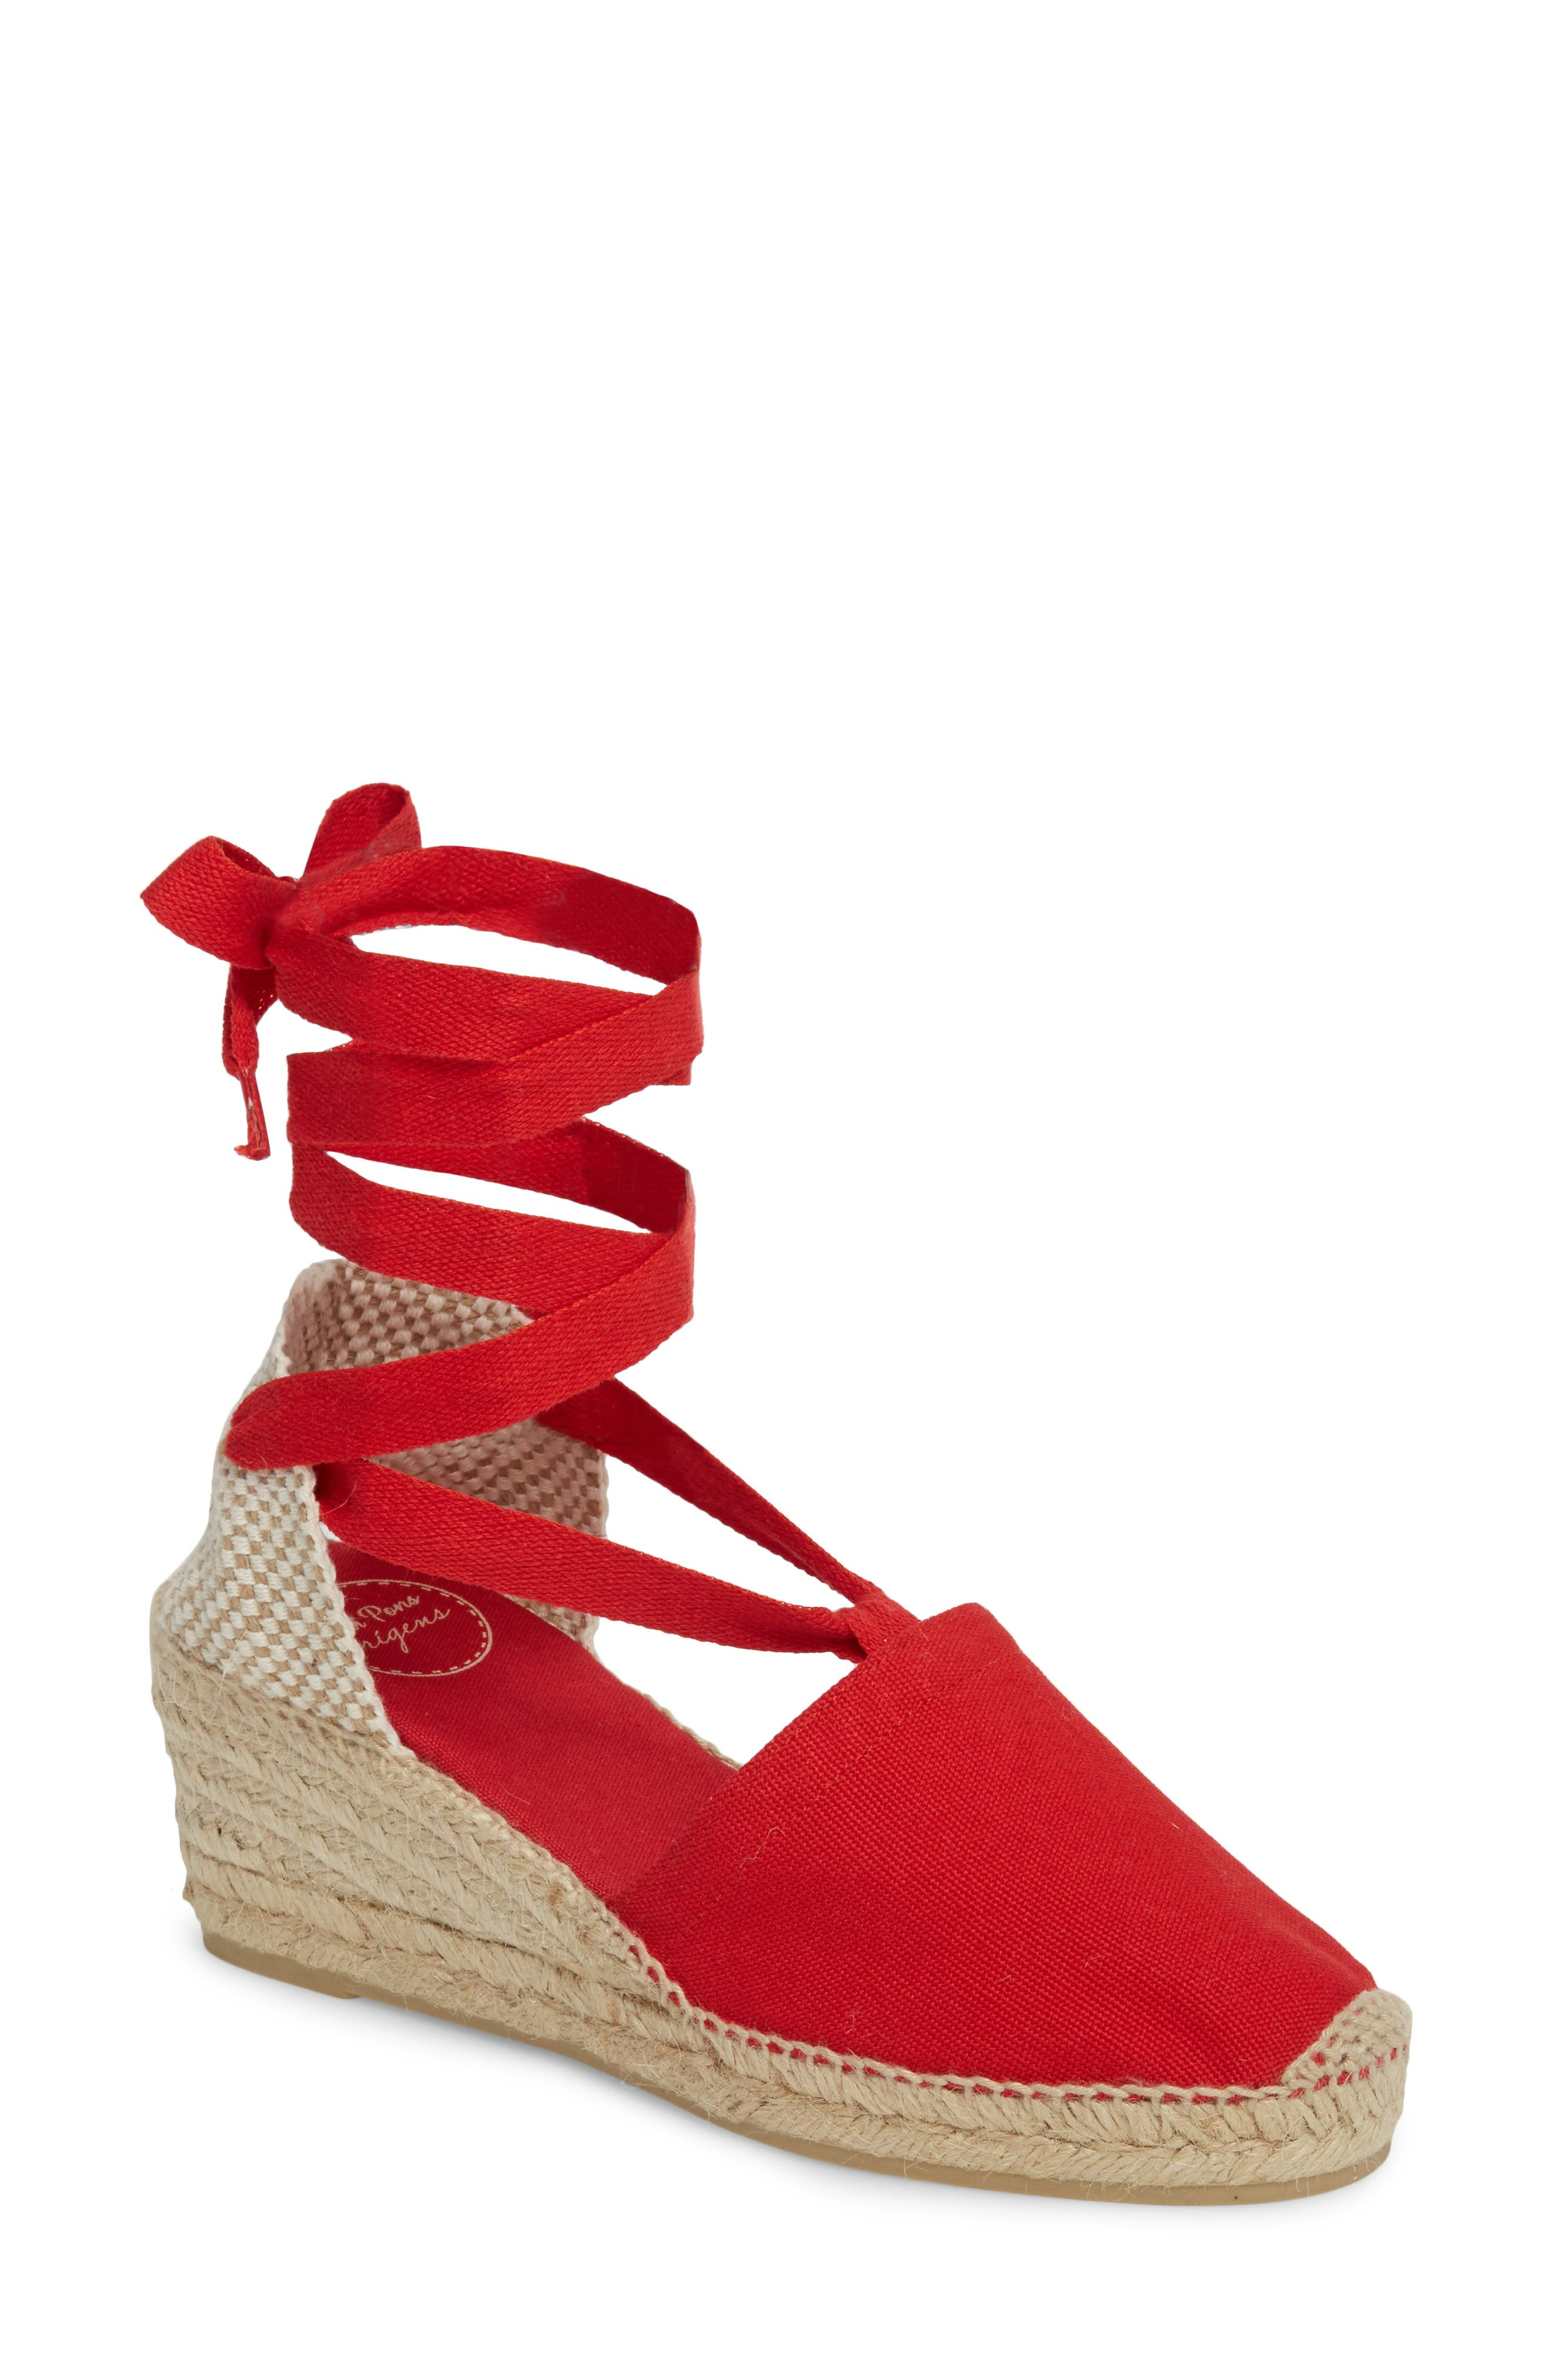 Valencia Wraparound Espadrille Wedge,                             Main thumbnail 1, color,                             Red Fabric